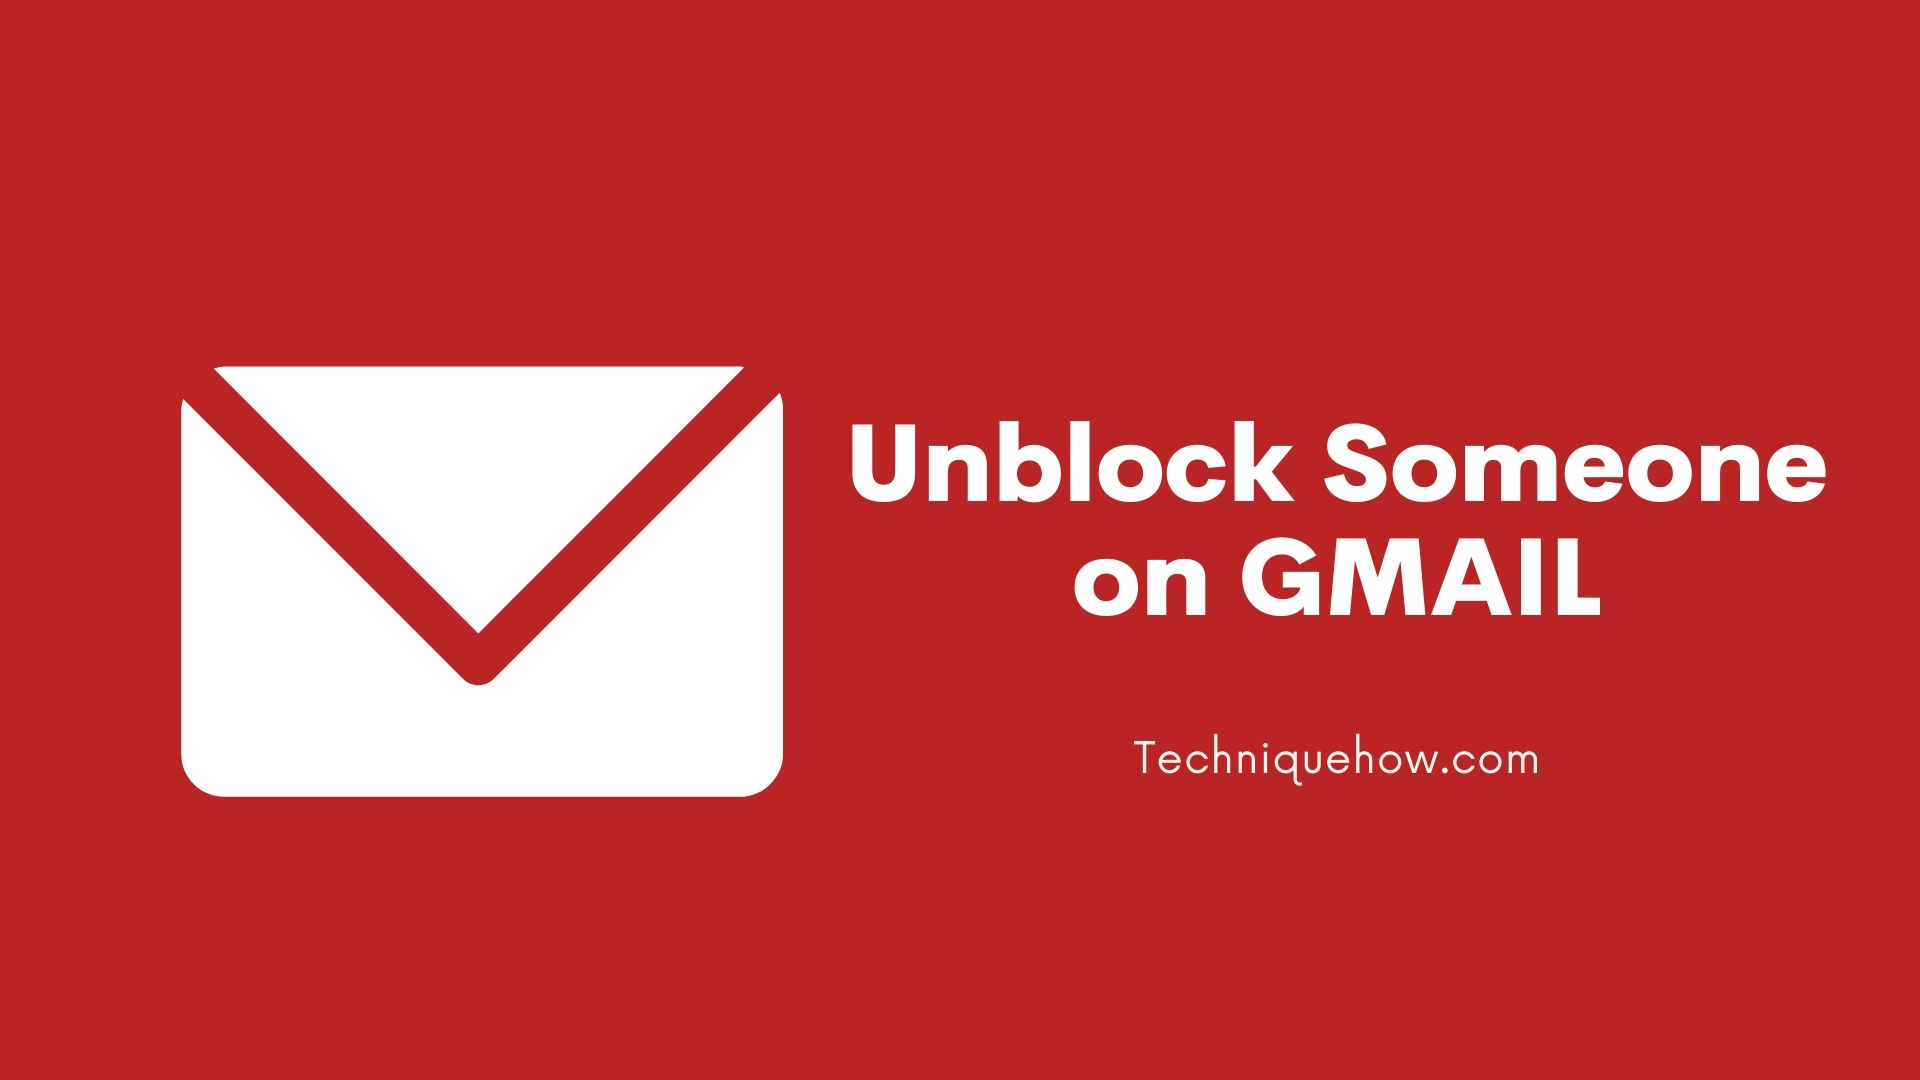 unblock on gmail